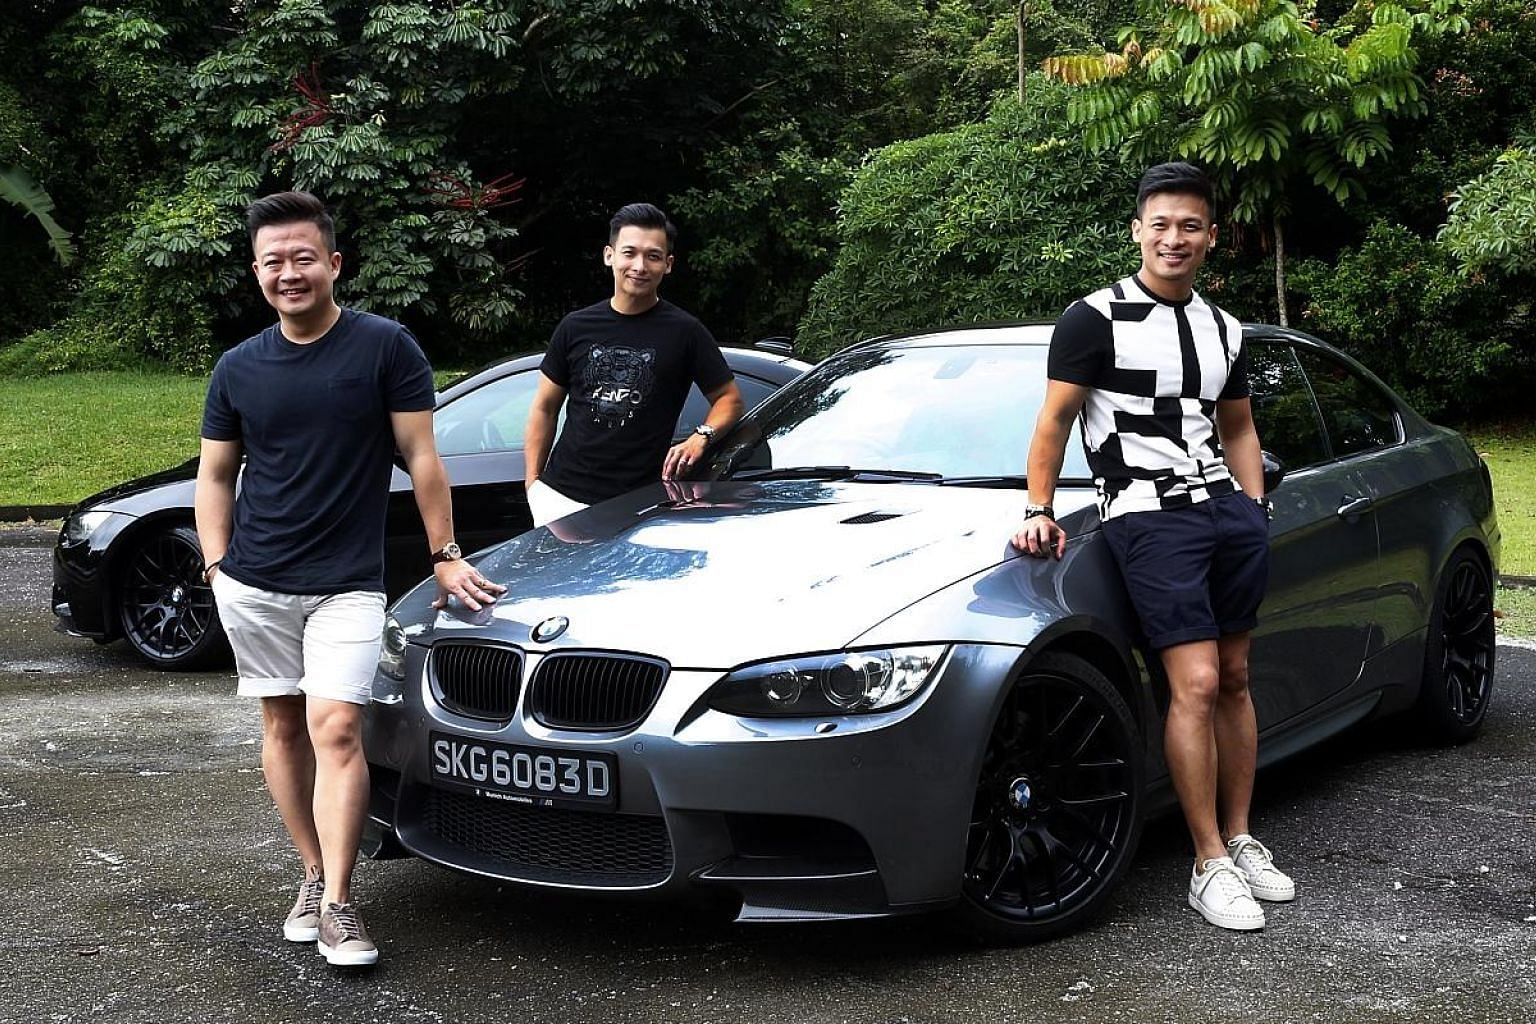 Amos's car boot. Brothers (from left) Amos Poh, Wen Yi and Adrel drive BMW M3 coupes. The grey M3 belongs to Amos and the one behind belongs to Wen Yi. Adrel drives a black M3, which was at the workshop on the day of the photoshoot.